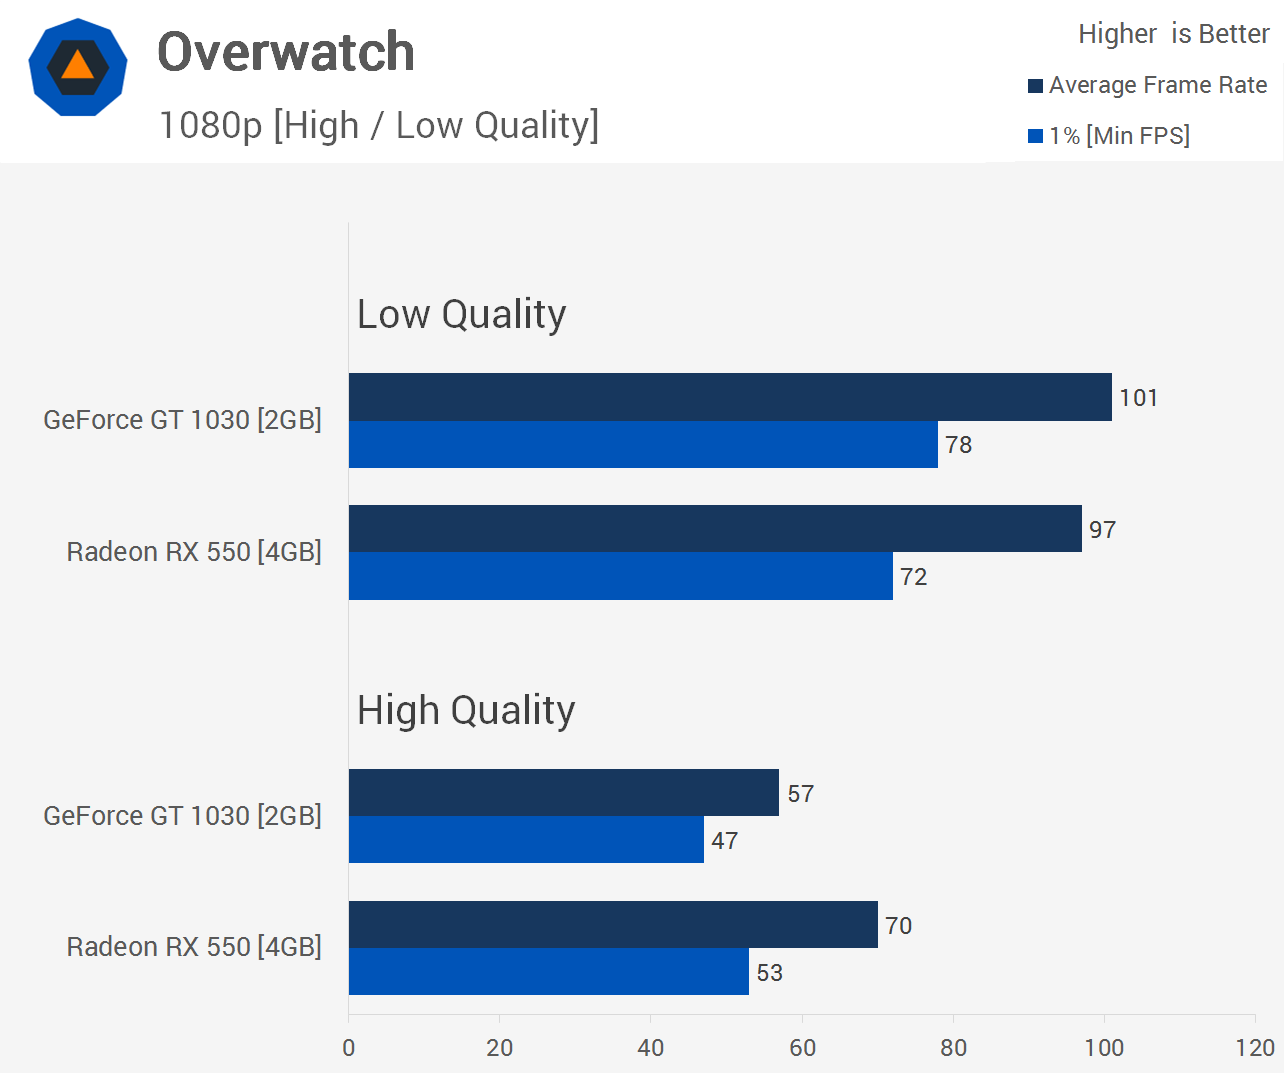 Esports Benchmark Geforce Gt 1030 Vs Radeon Rx 550 Techspot Vga Zotac 2gb Gddr5 Overwatch Is Another Super Popular First Person Shooter And It Can Be Much More Visually Demanding Than Csgo Even So Using The Low Quality Preset Game